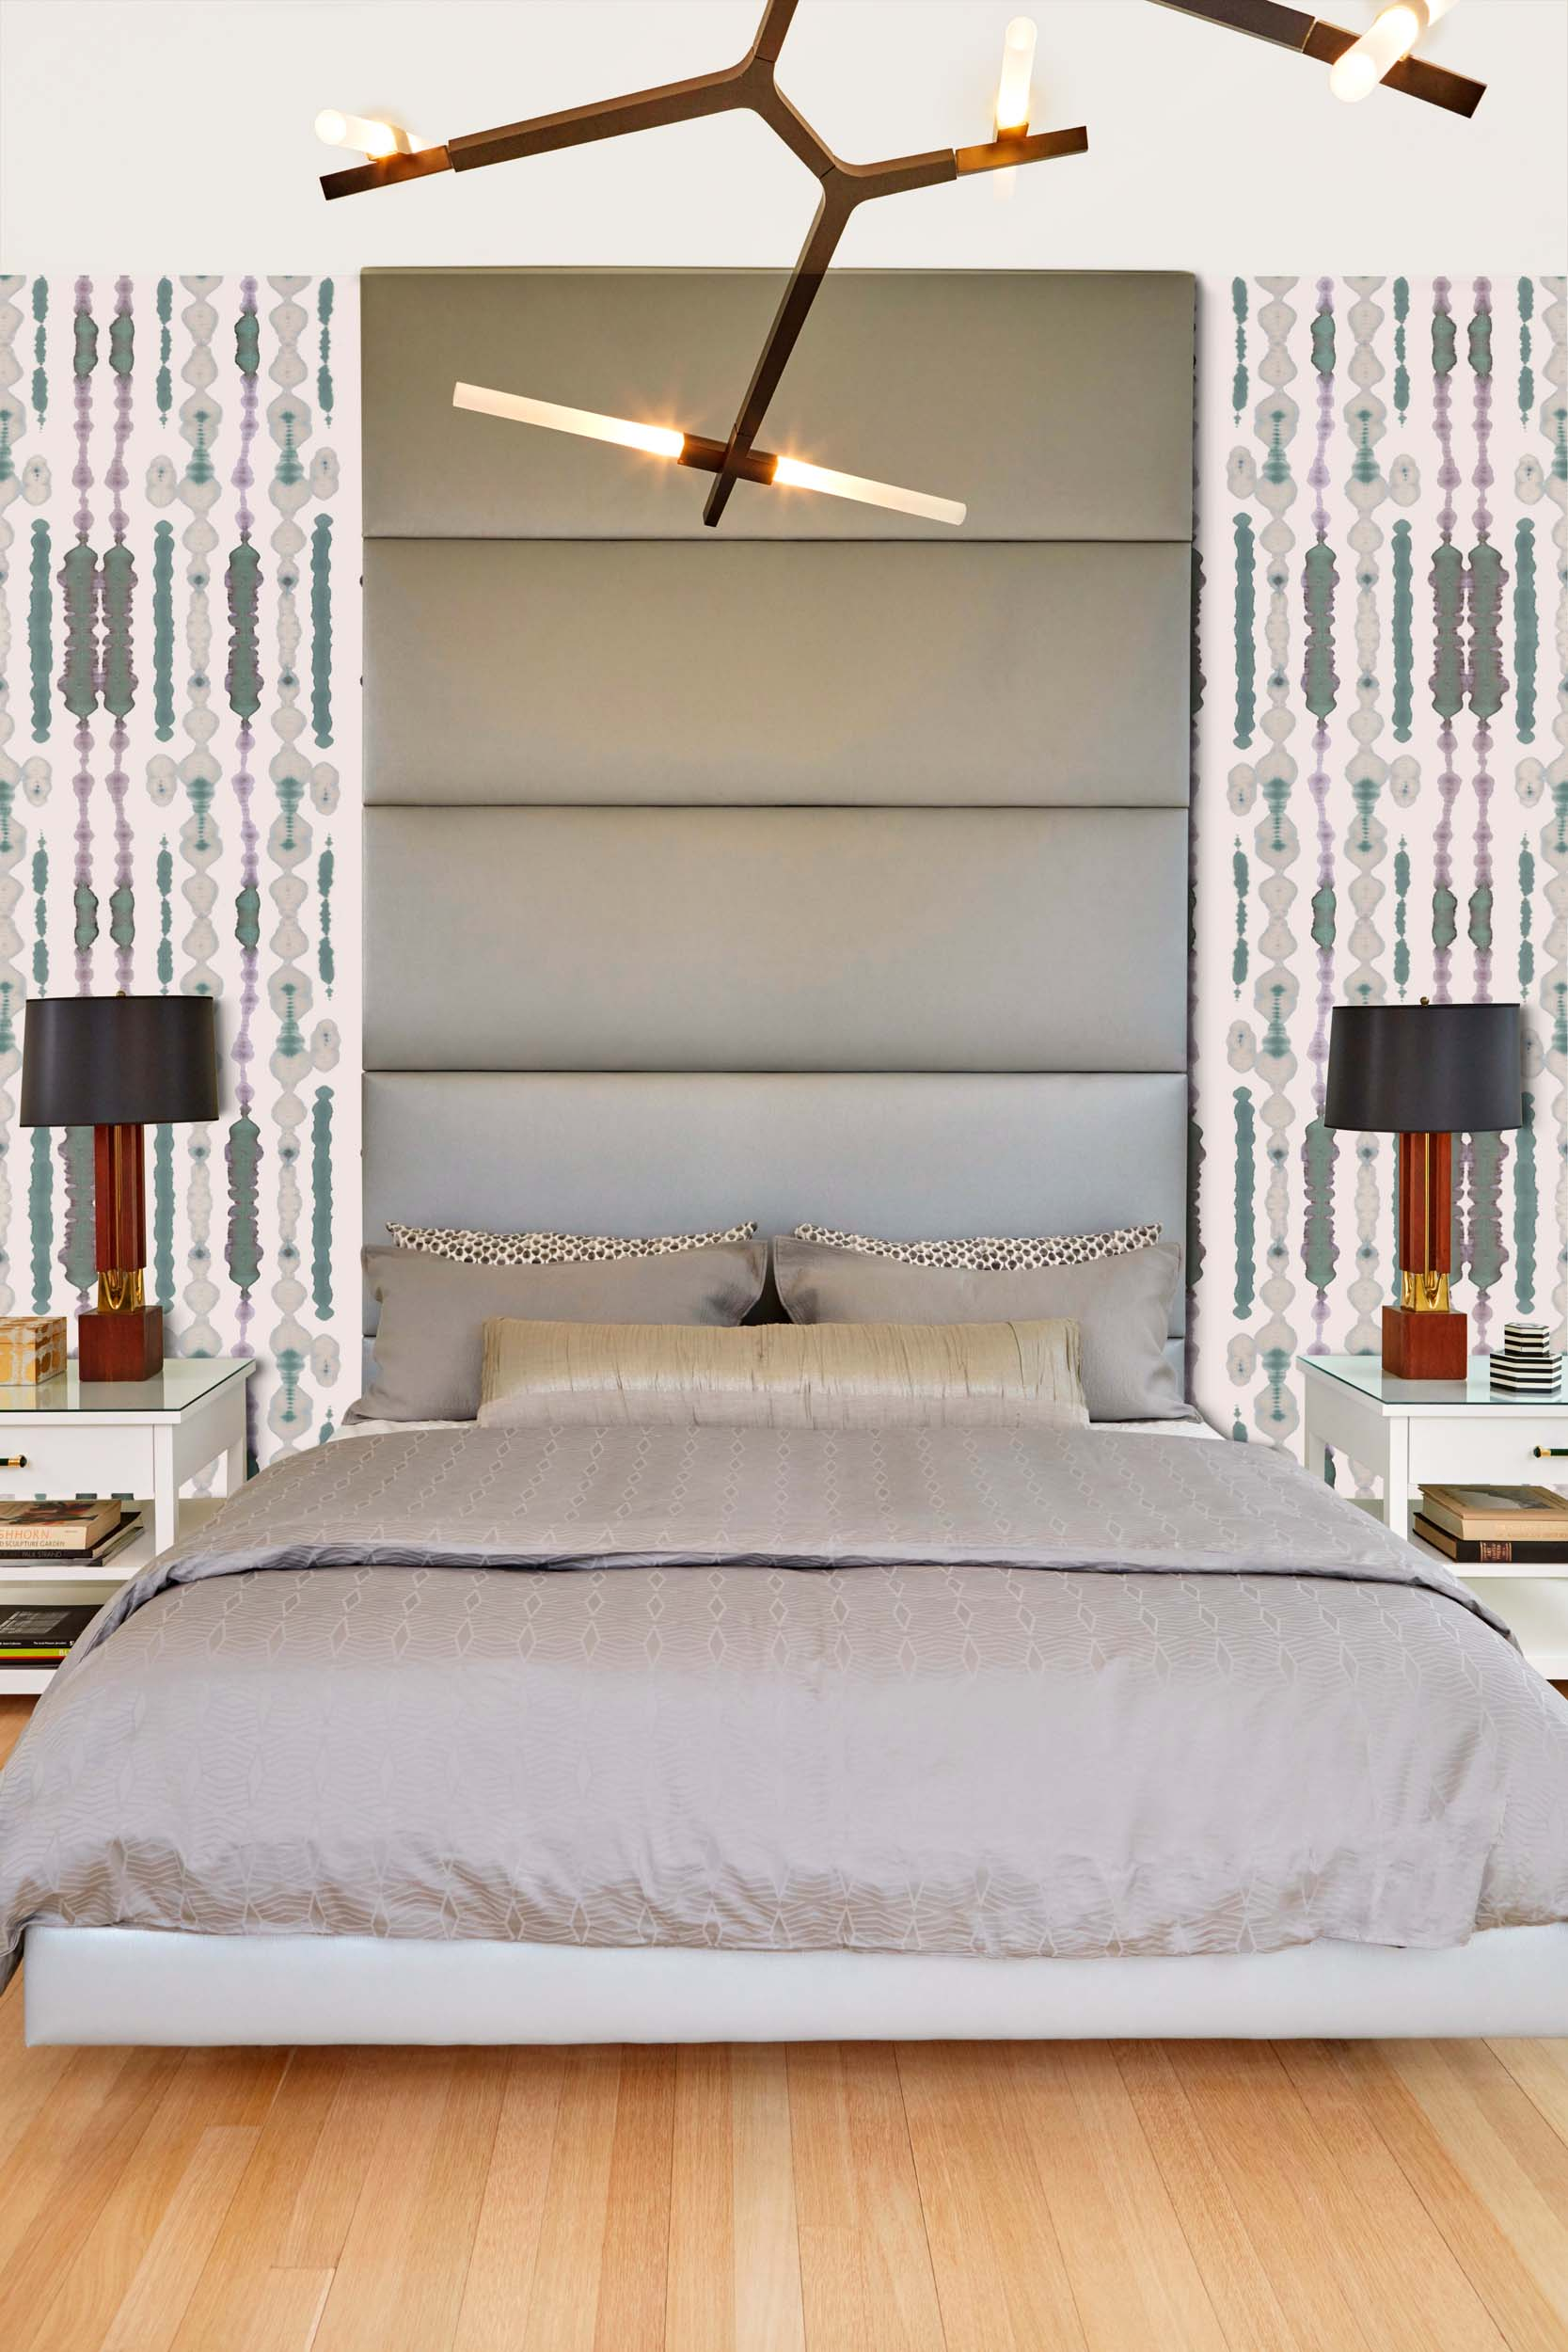 bedroom design with bed for two, lamp on each side the bed and stylish lights on ceiling